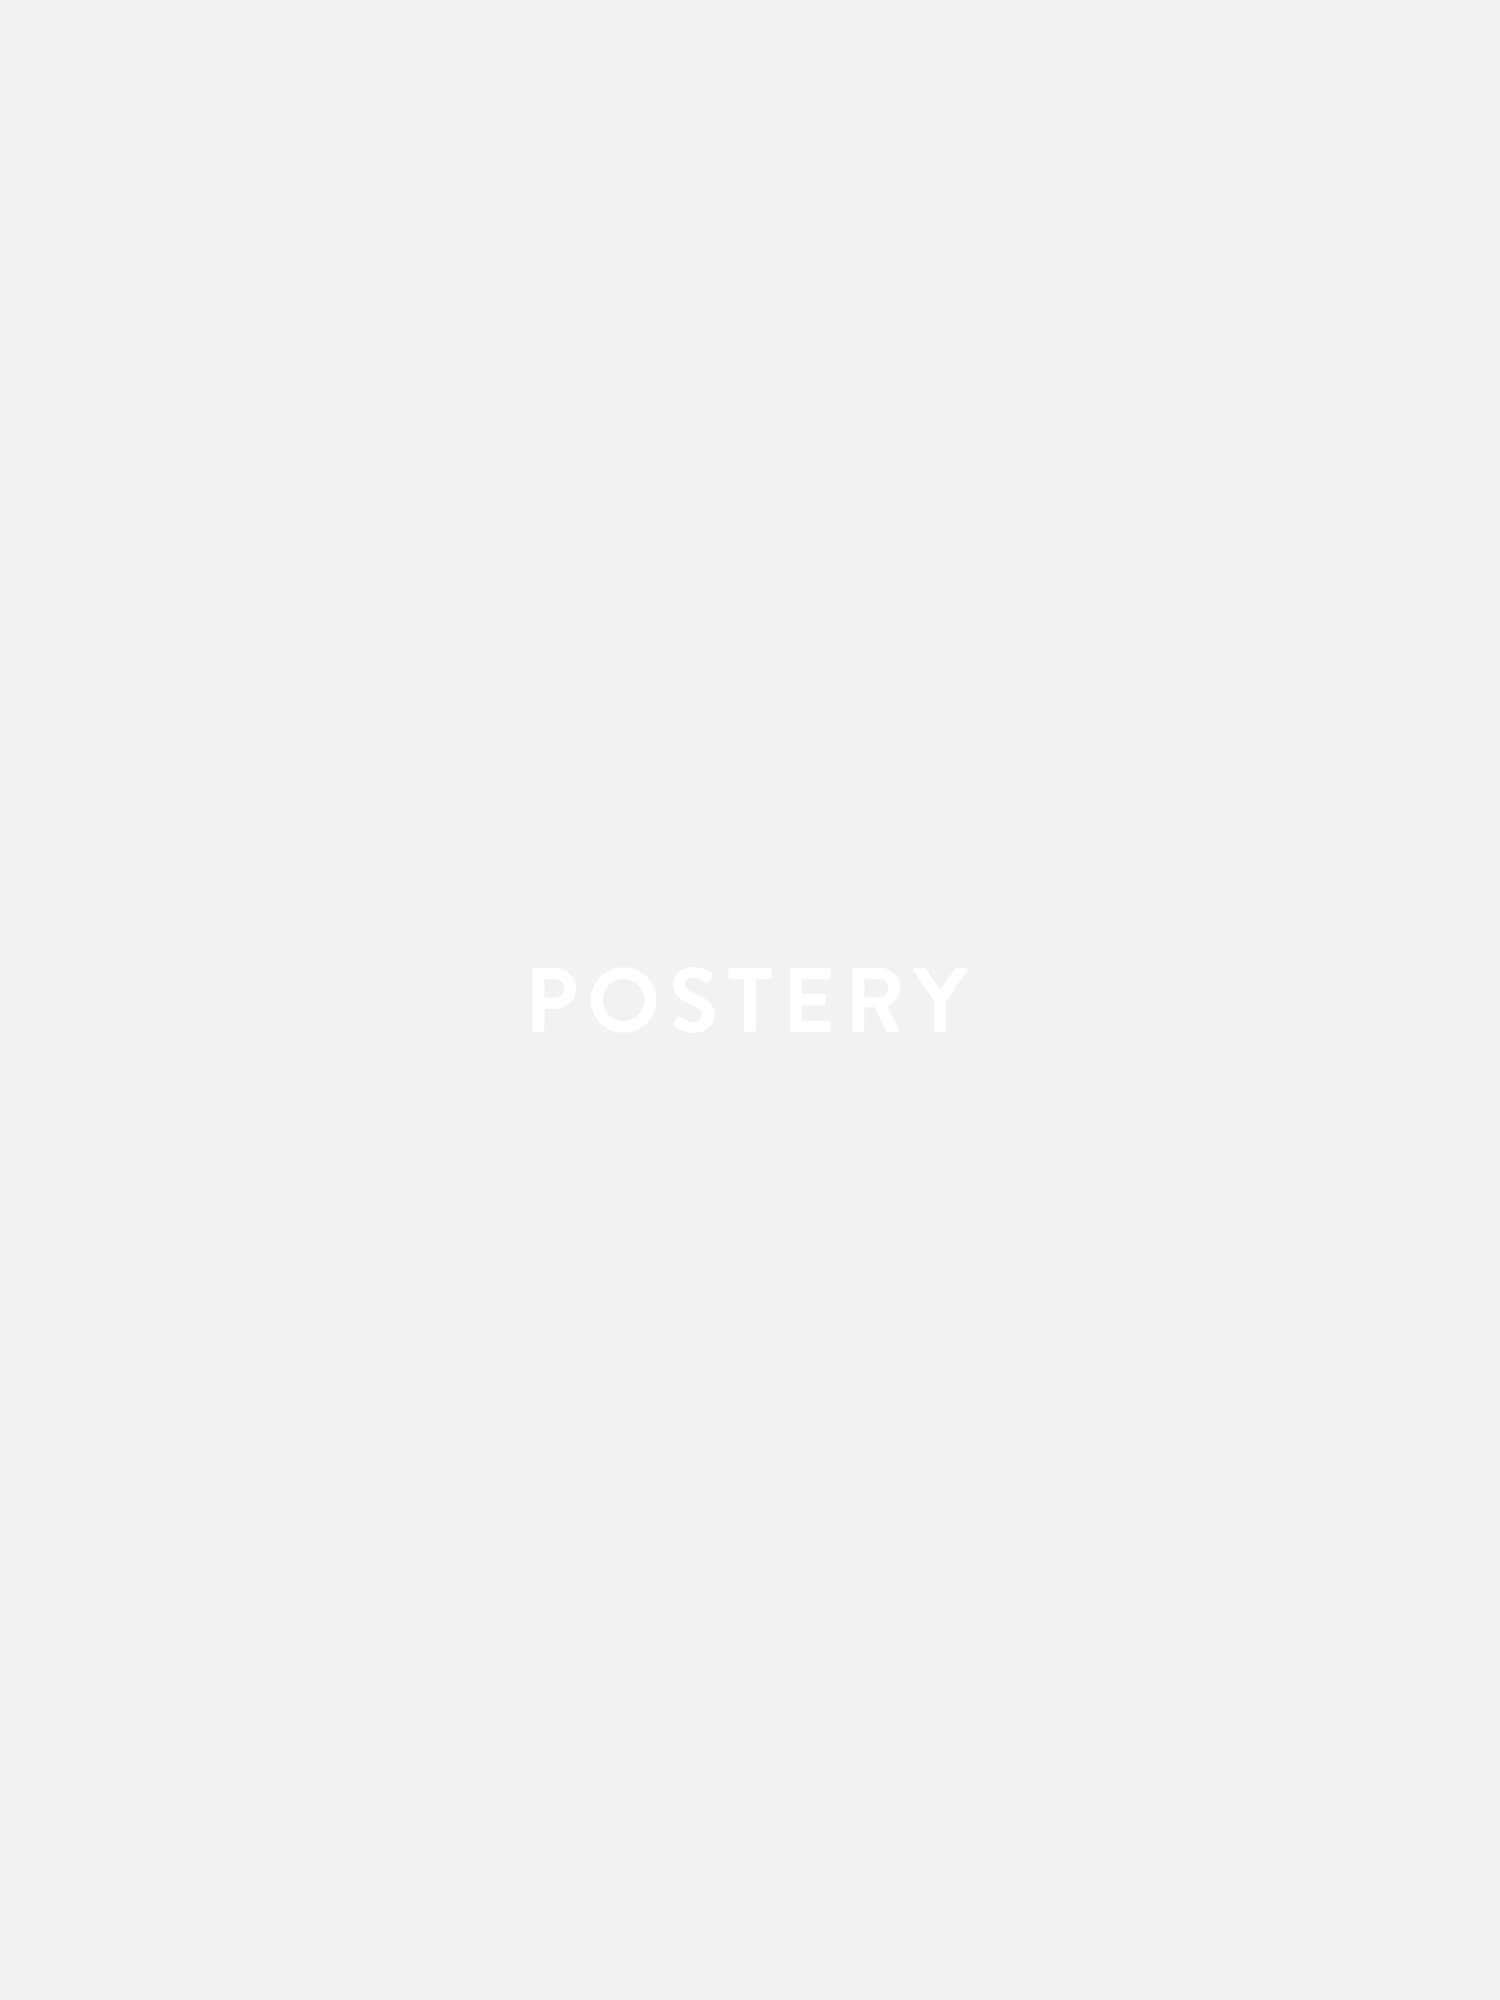 Little Bear Poster